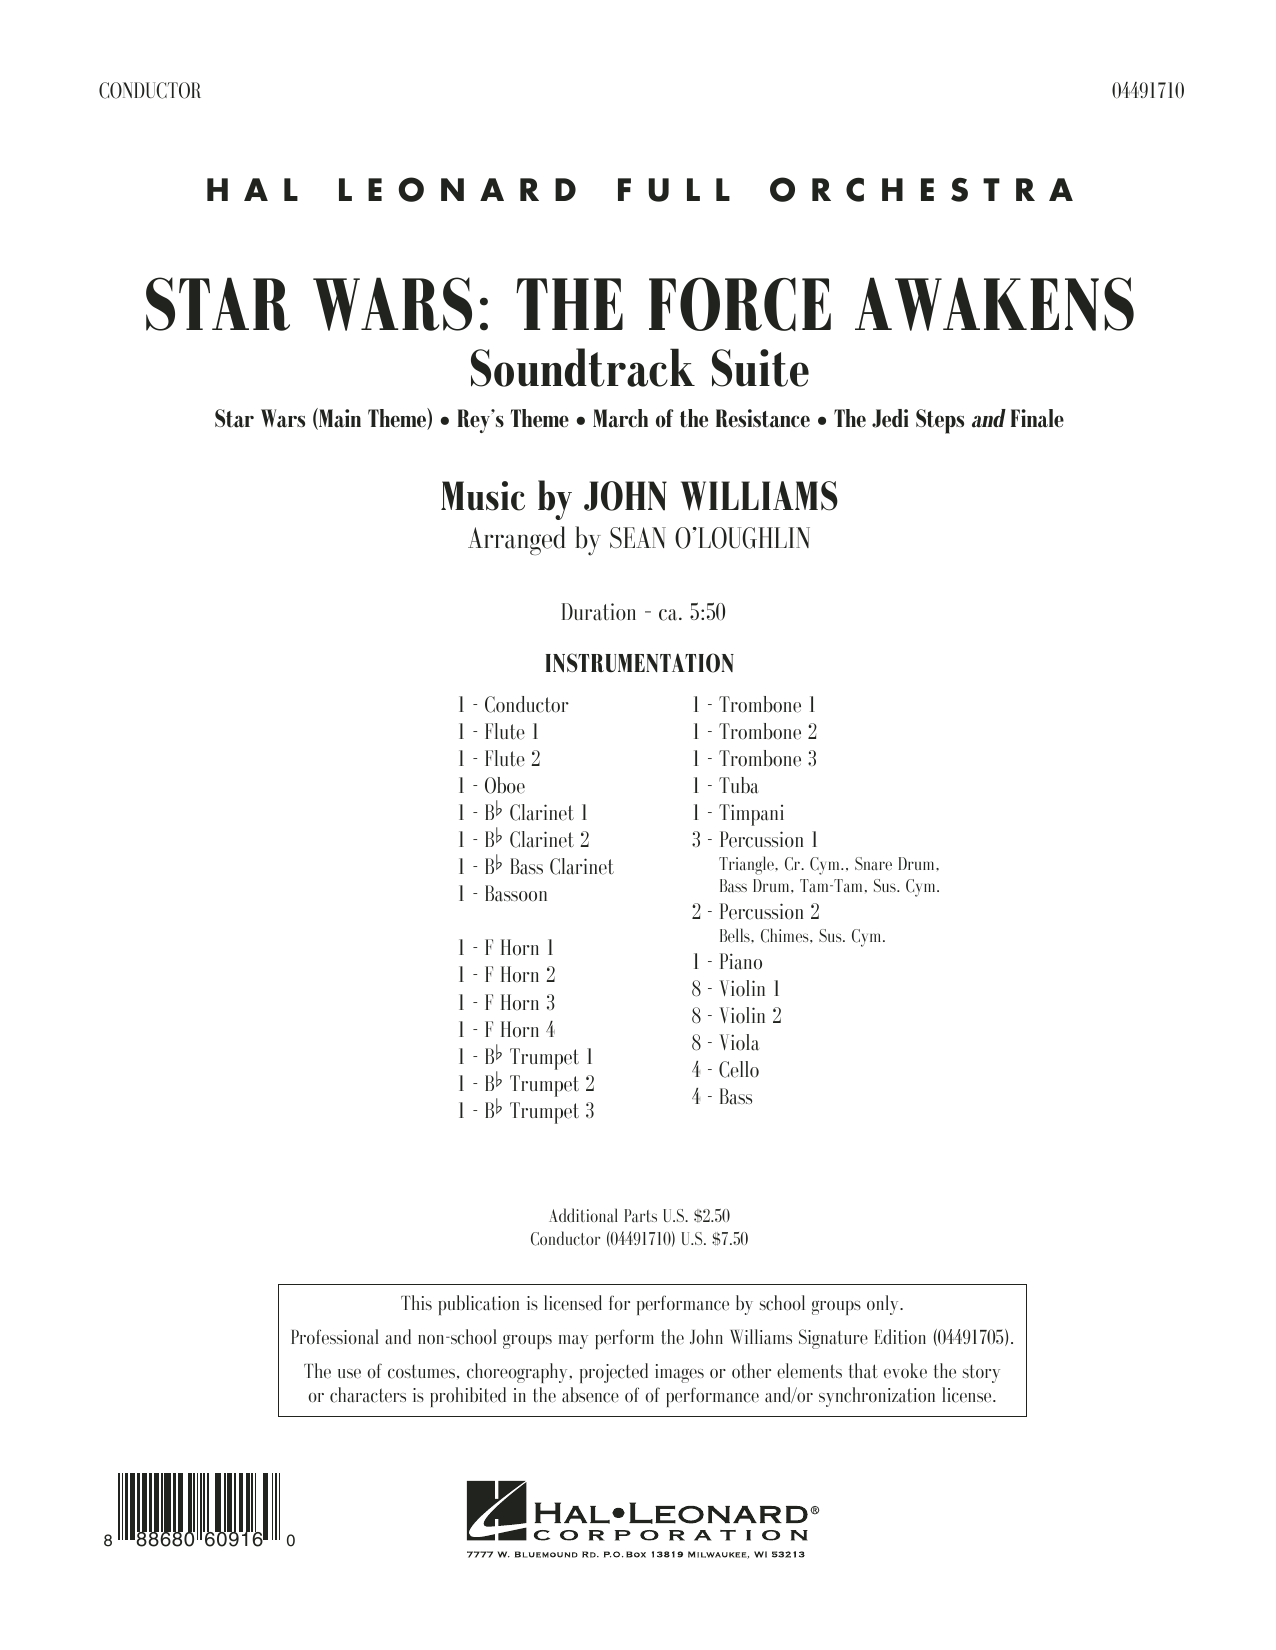 Star Wars: The Force Awakens Soundtrack Suite - Conductor Score (Full Score) (Full Orchestra)